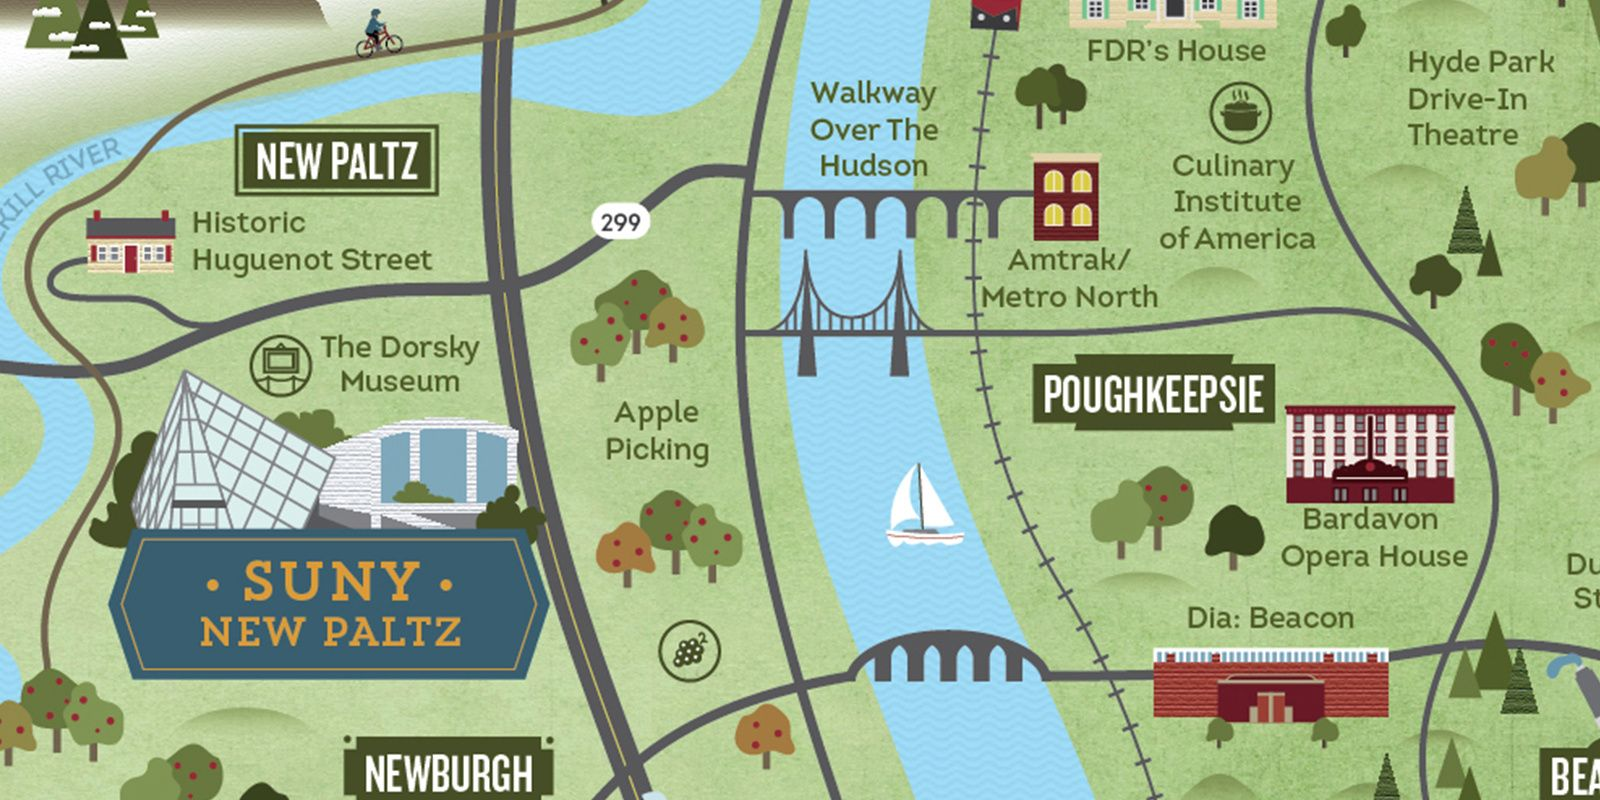 SUNY New Paltz Illustrated Tourism Map Detail | Cinder Design Co ...